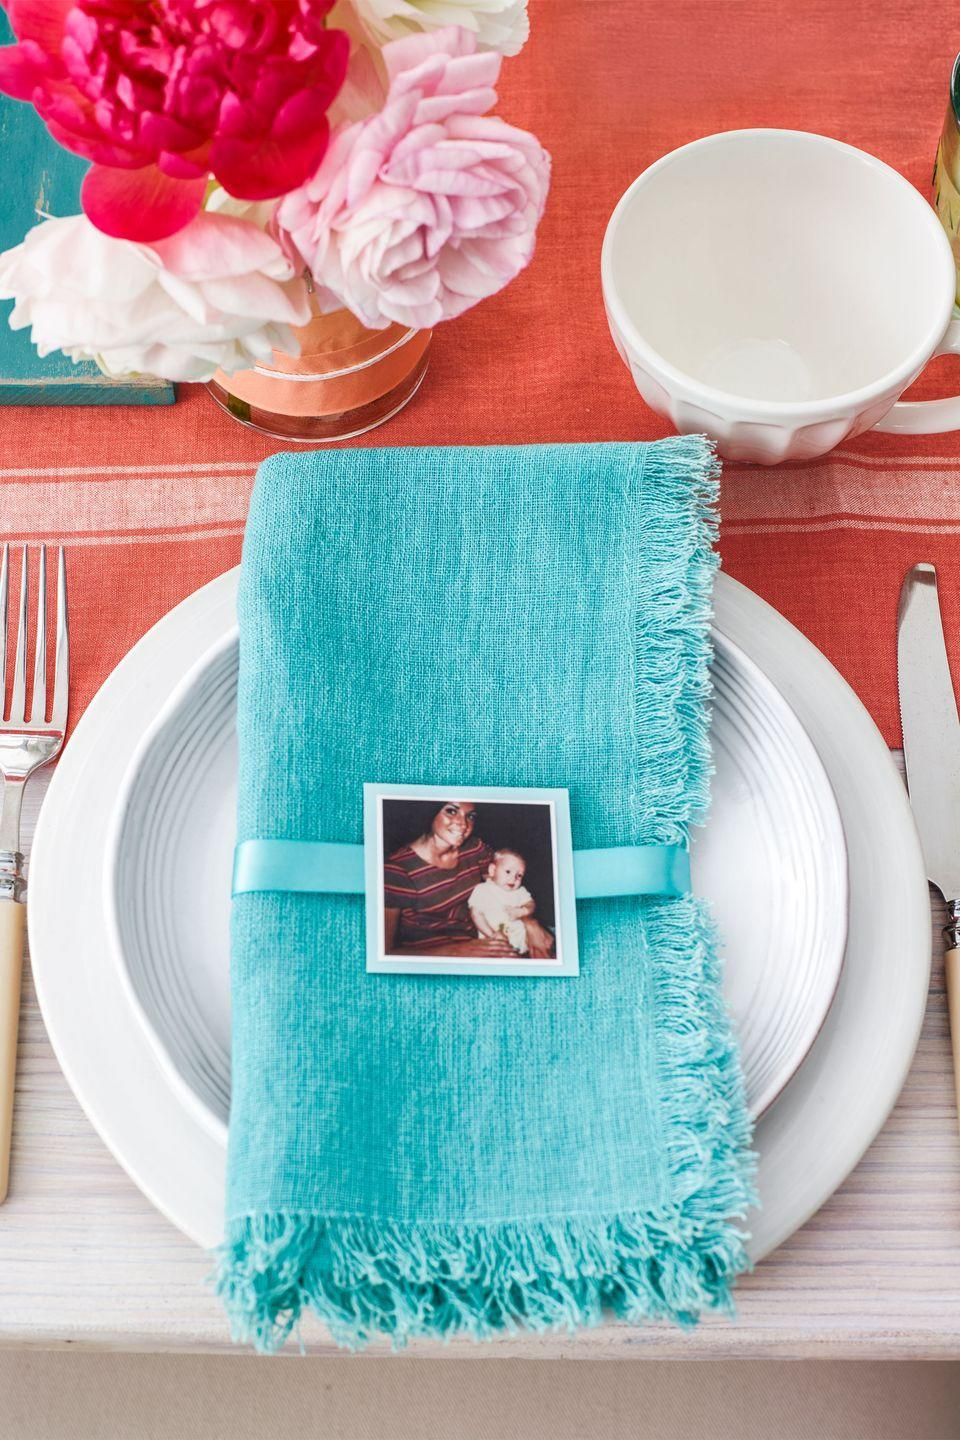 """<p>To make these sweet place cards for your <span class=""""redactor-unlink""""><a href=""""https://www.womansday.com/food-recipes/g2237/brunch-recipes/"""" rel=""""nofollow noopener"""" target=""""_blank"""" data-ylk=""""slk:Mother's Day brunch"""" class=""""link rapid-noclick-resp"""">Mother's Day brunch</a></span>, print an adorable old photo of you and mom, back it with card stock, and add a ribbon.</p>"""